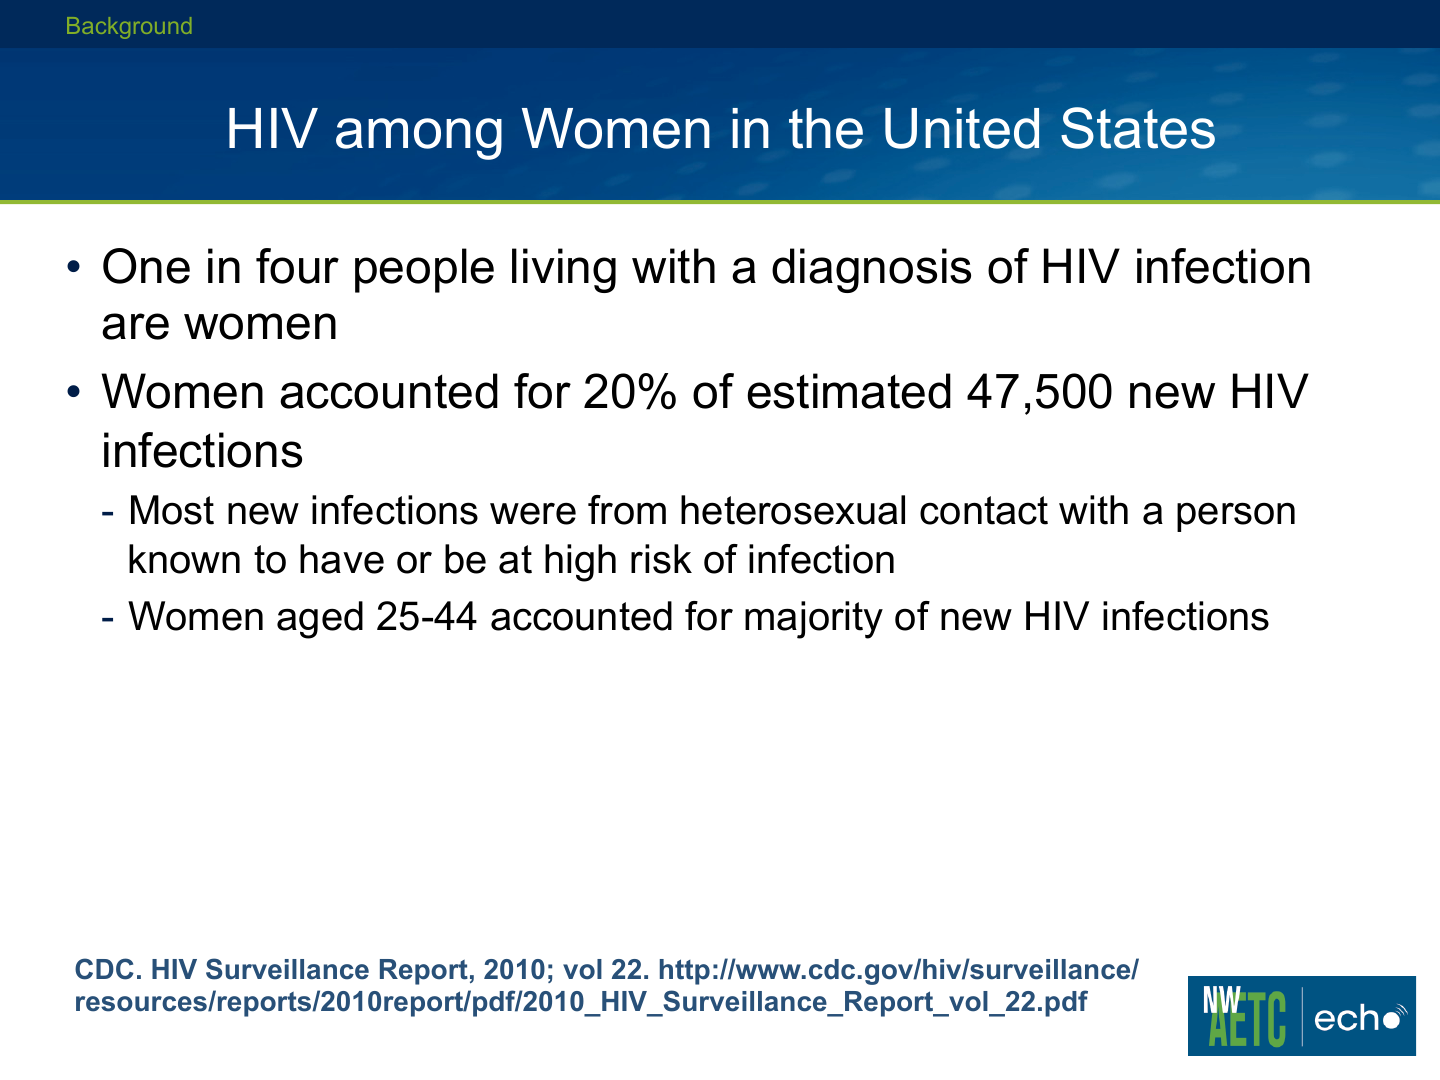 hiv surveillance report vol 25 Diagnoses of hiv infection in the united states and dependent areas, 2013 hiv surveillance report, volume 25 /hiv/library/reports/surveillance.